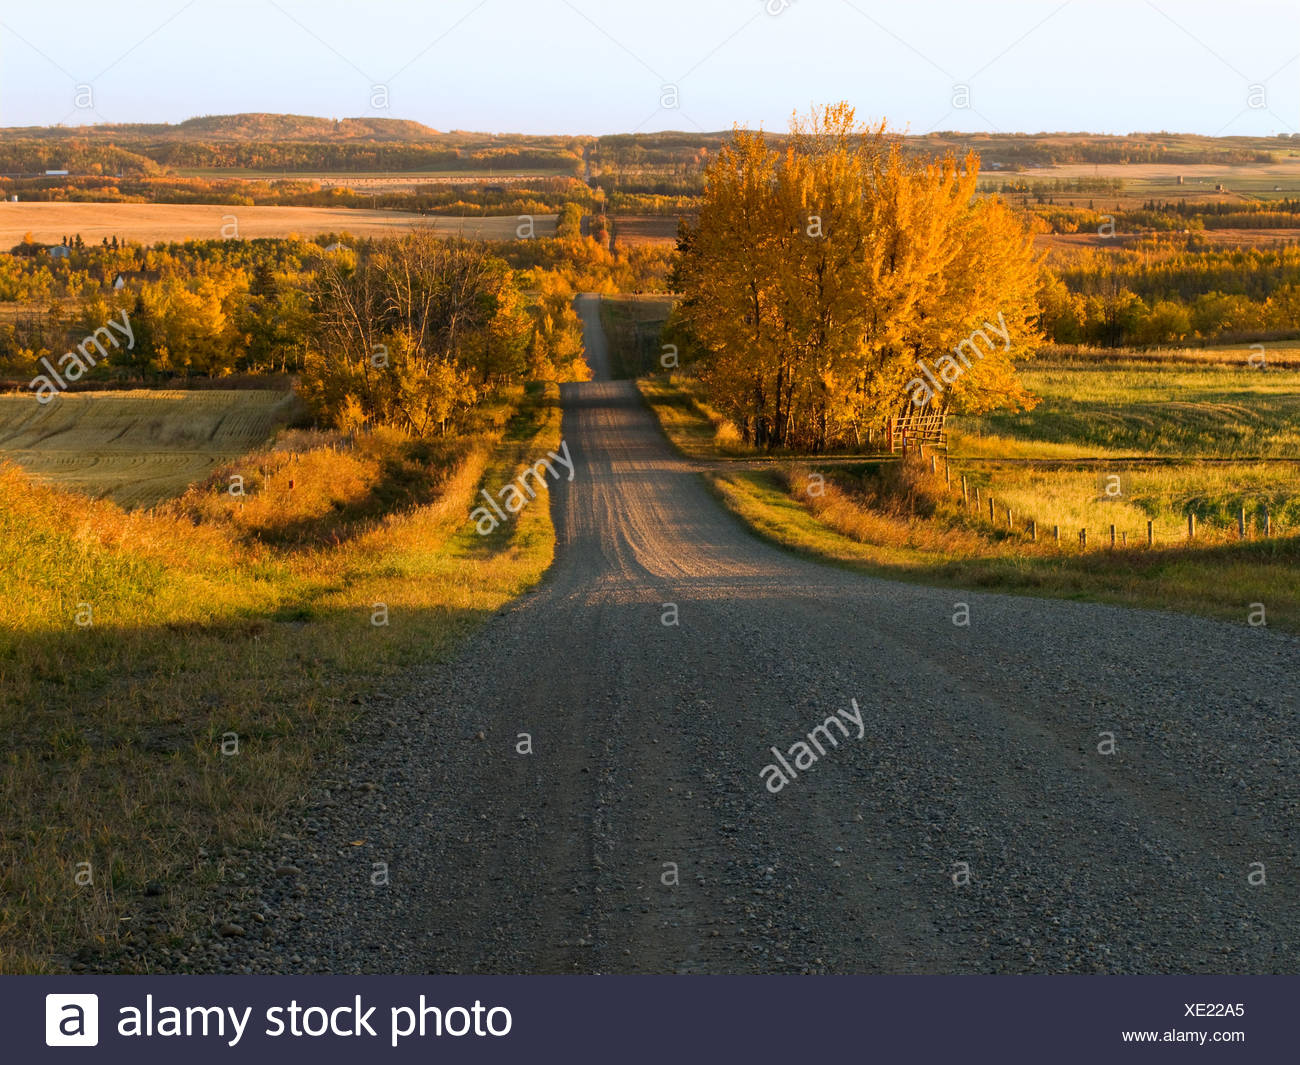 Agriculture - A gravel country road leading to the Red Deer River after sunrise on an Autumn morning / Alberta, Canada. - Stock Image